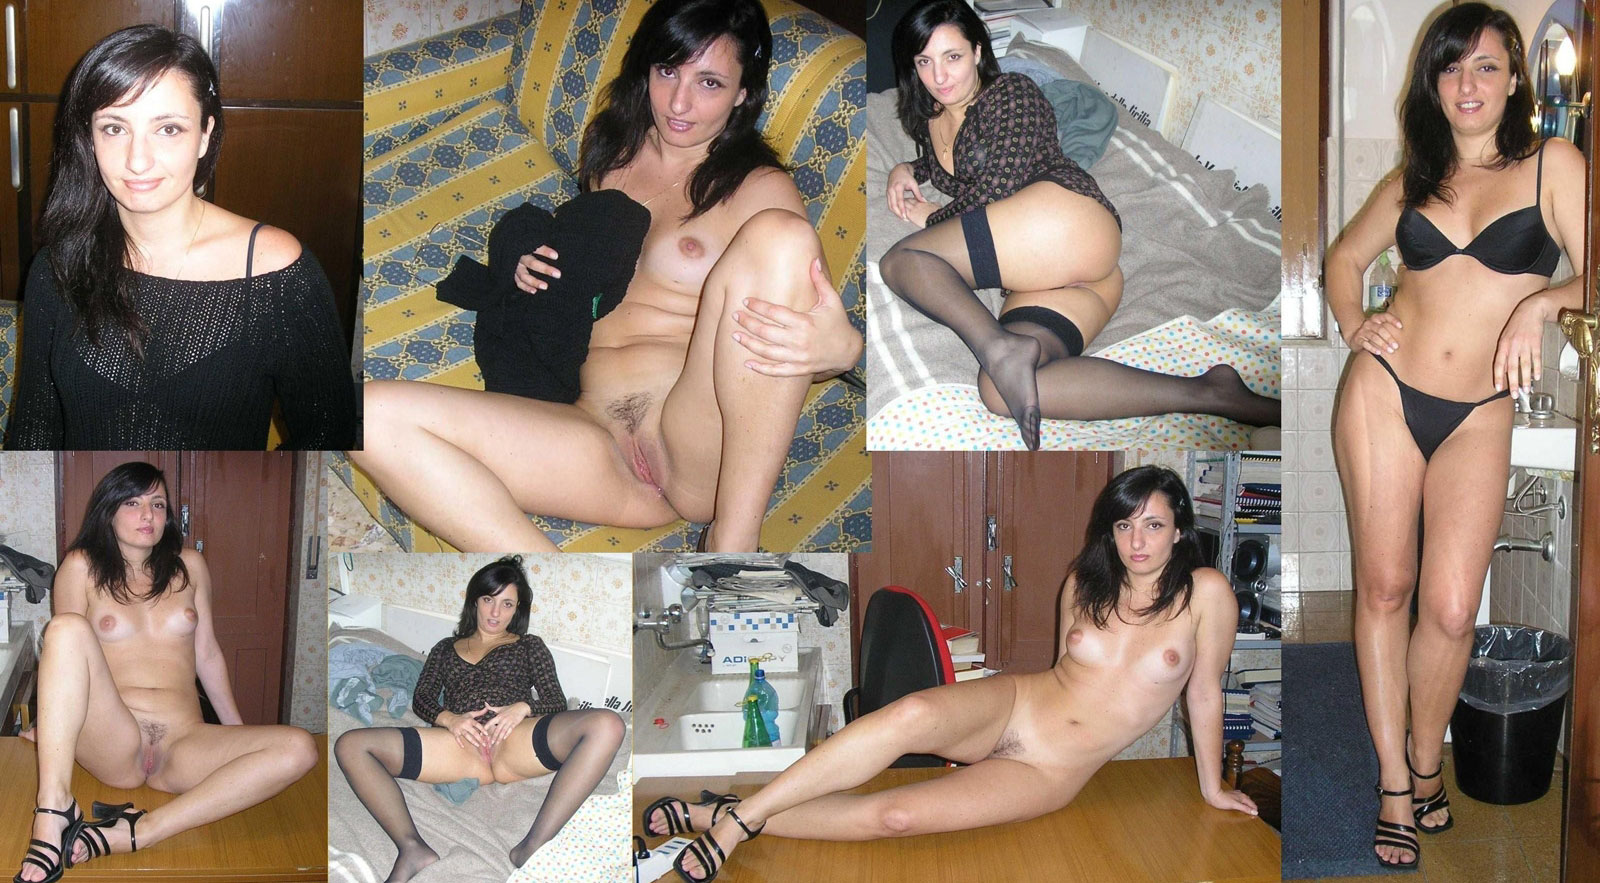 Entertaining Secretaries dressed and undressed topic with